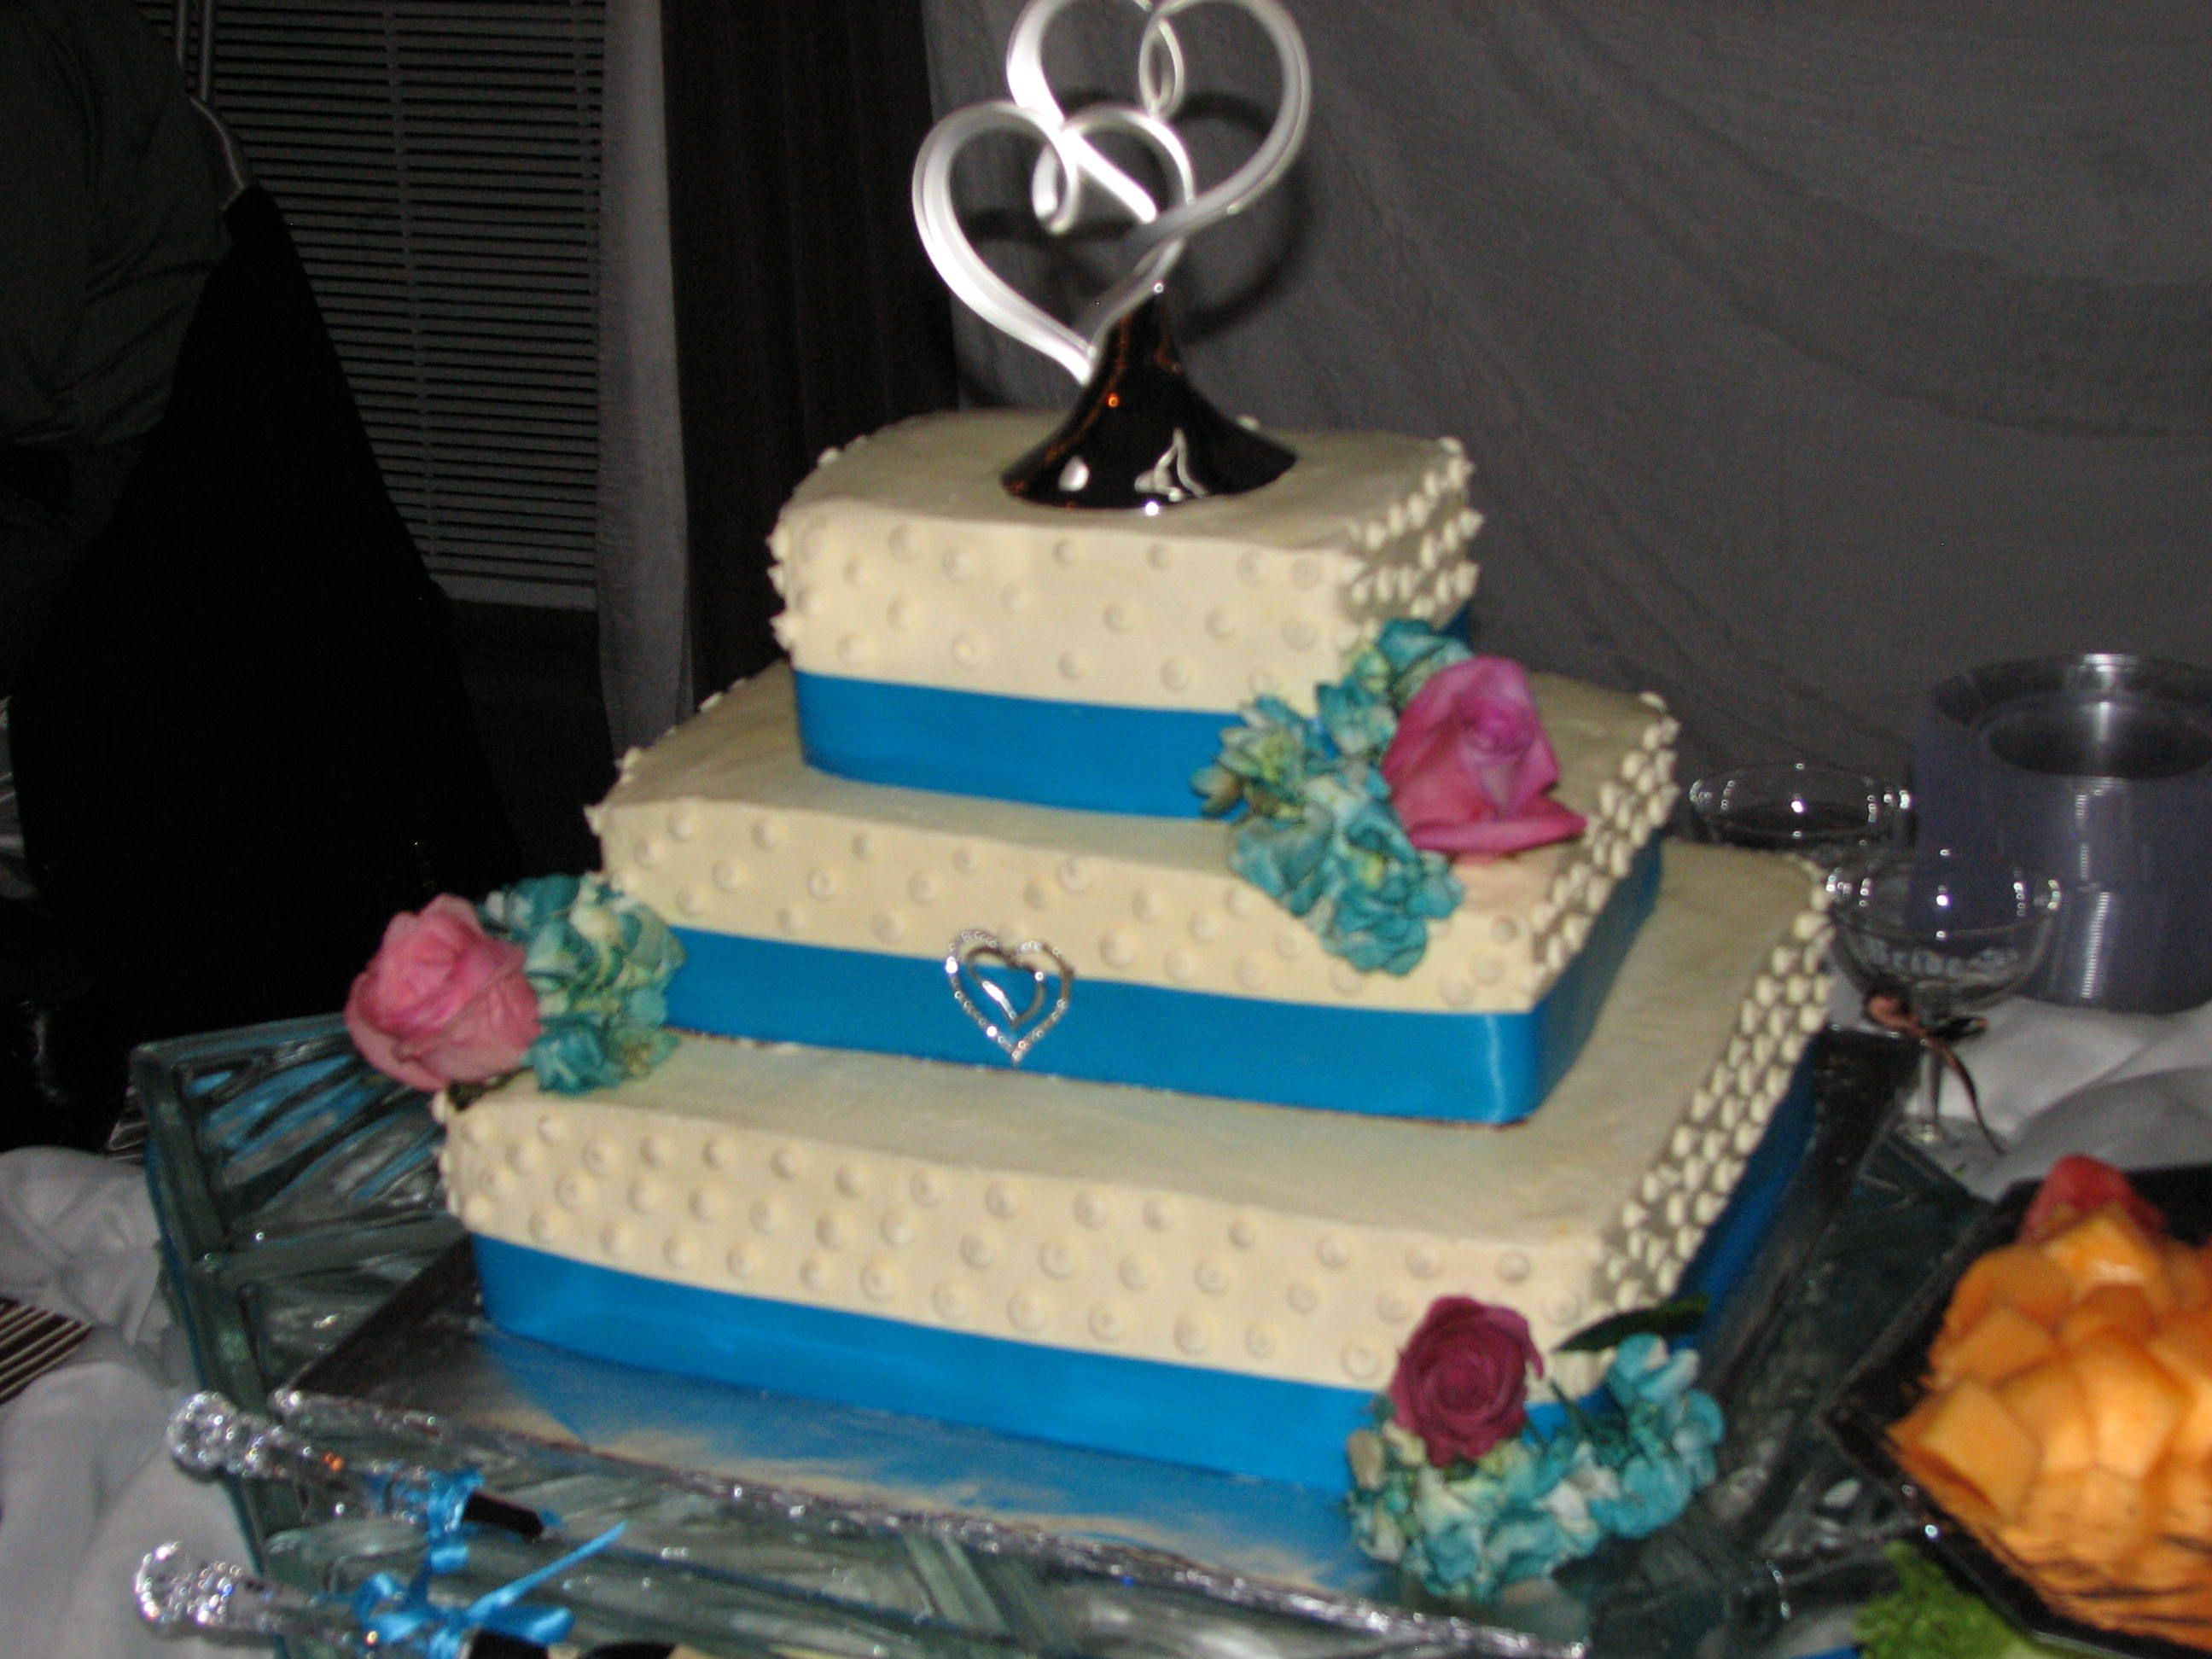 Flowers were added to a wedding cake for a little extra